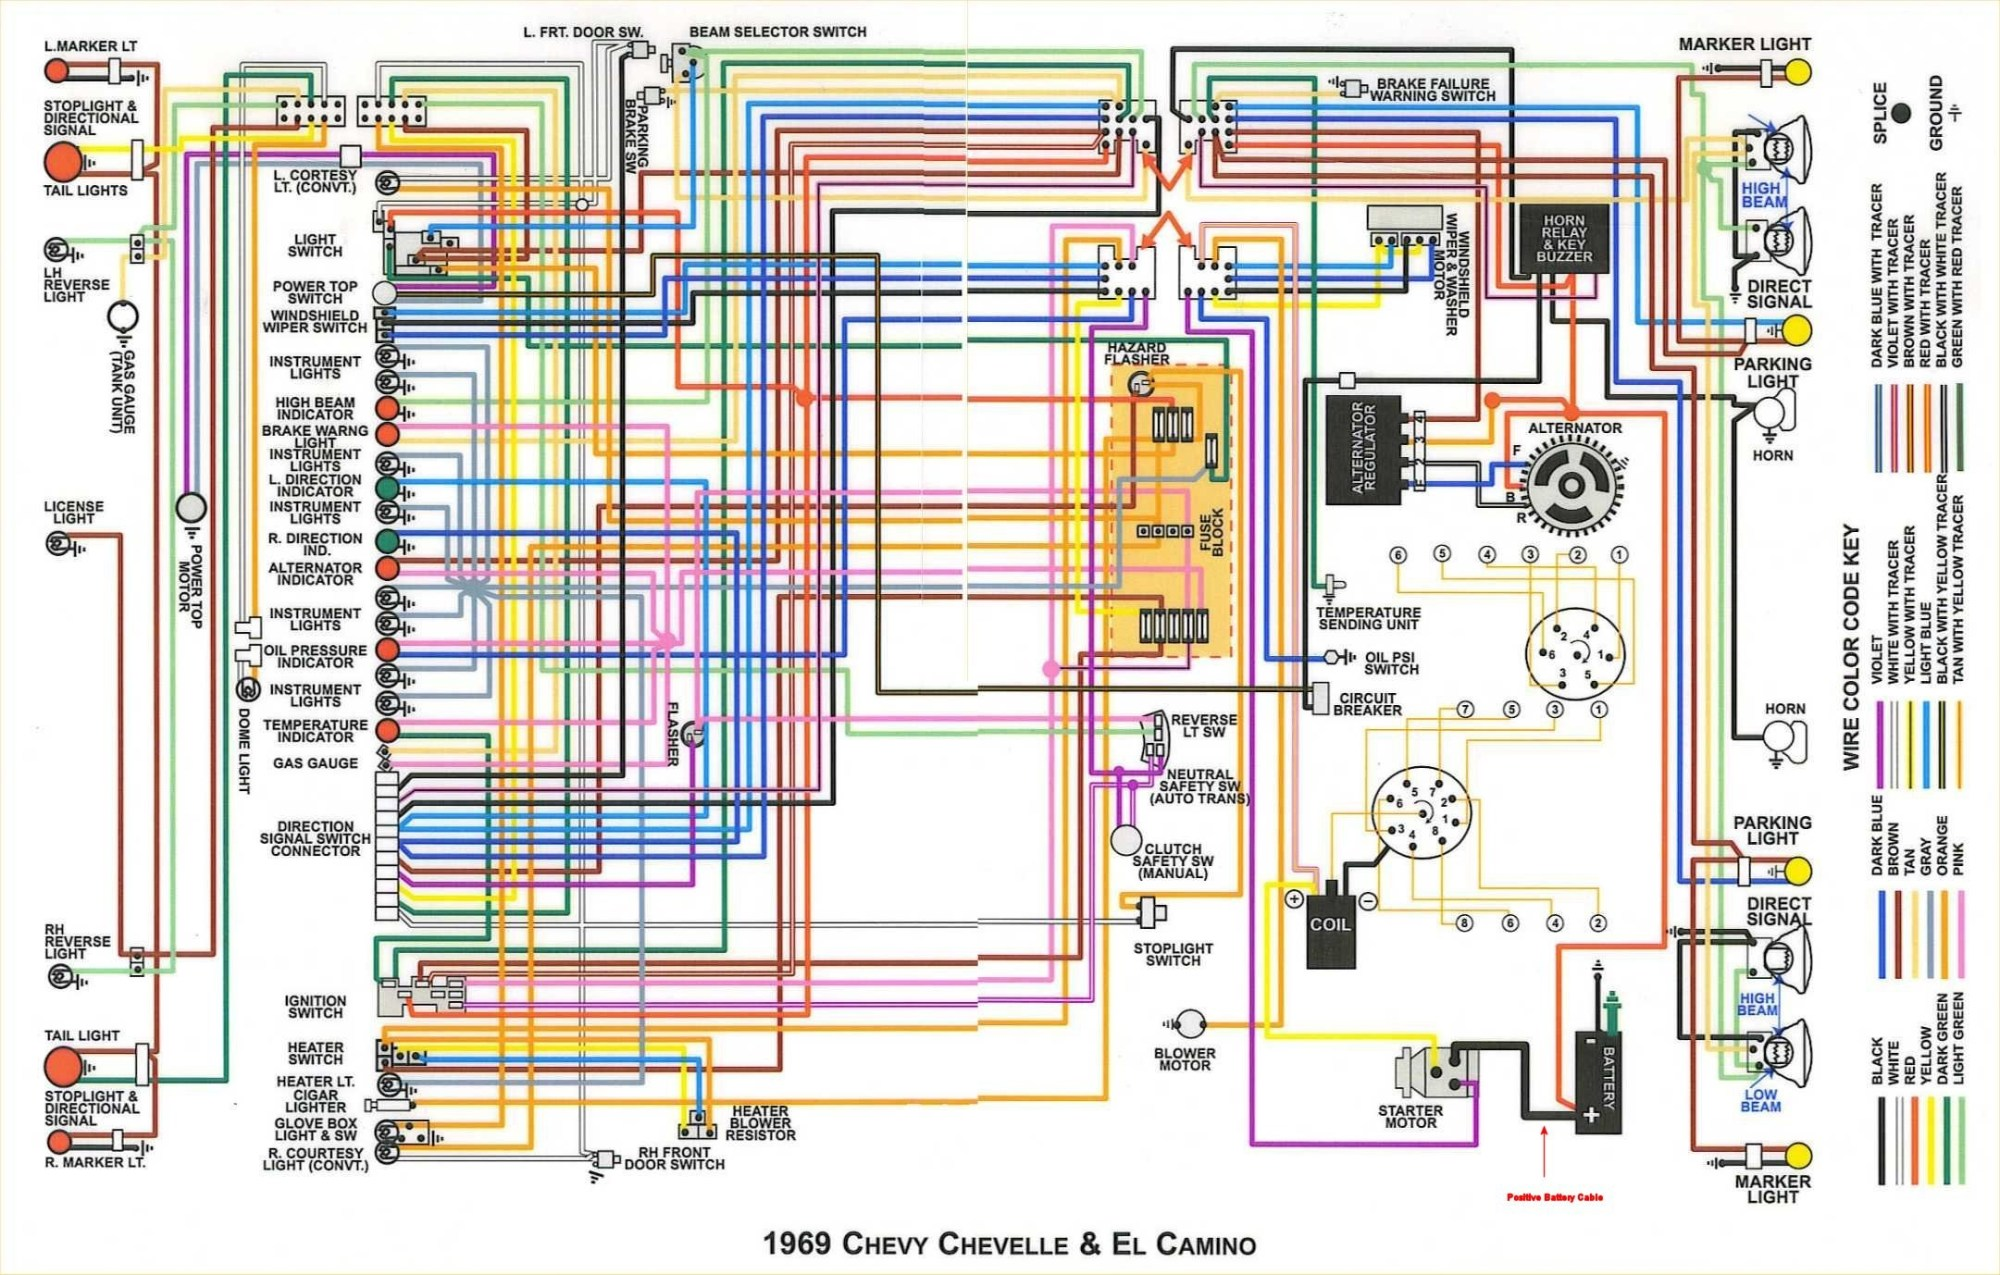 hight resolution of 67 chevelle wiring schematic wiring diagram blog wiring diagram for 67 chevelle